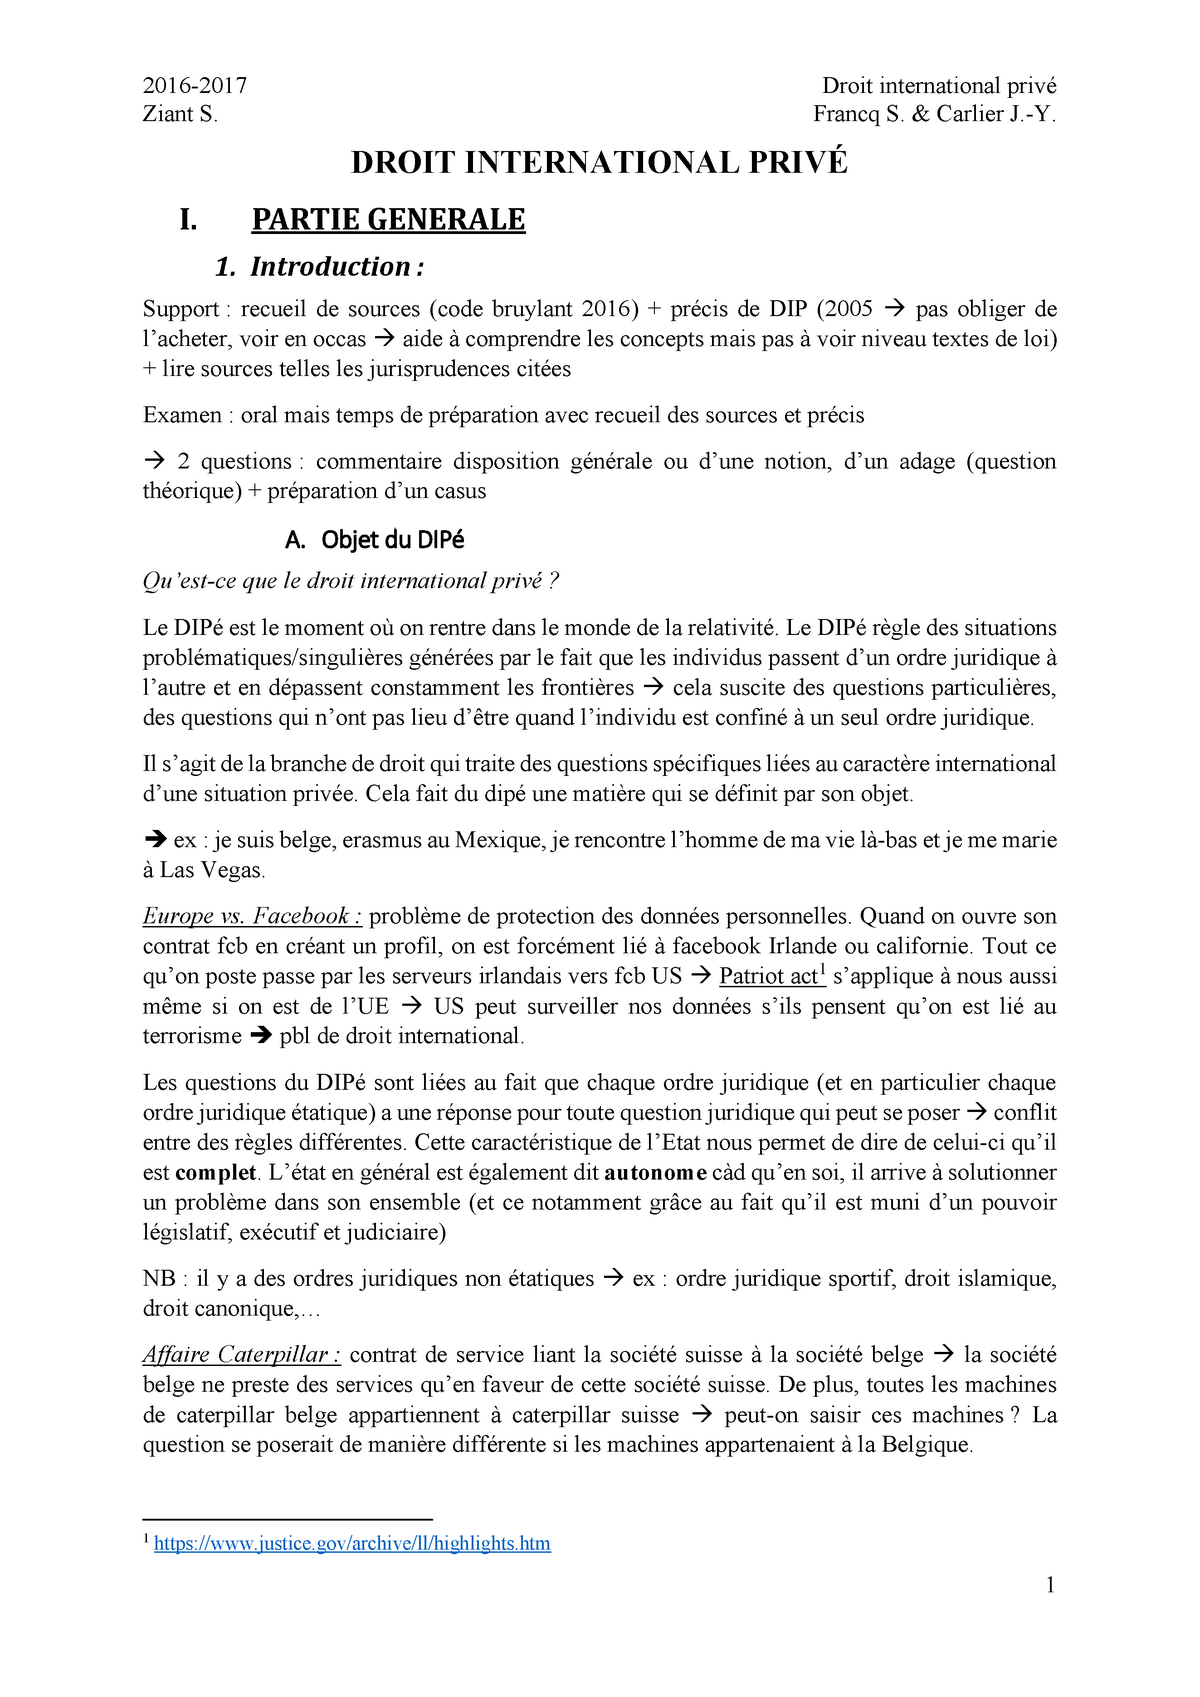 notes droit international priv u00e9 - droit international priv u00e9